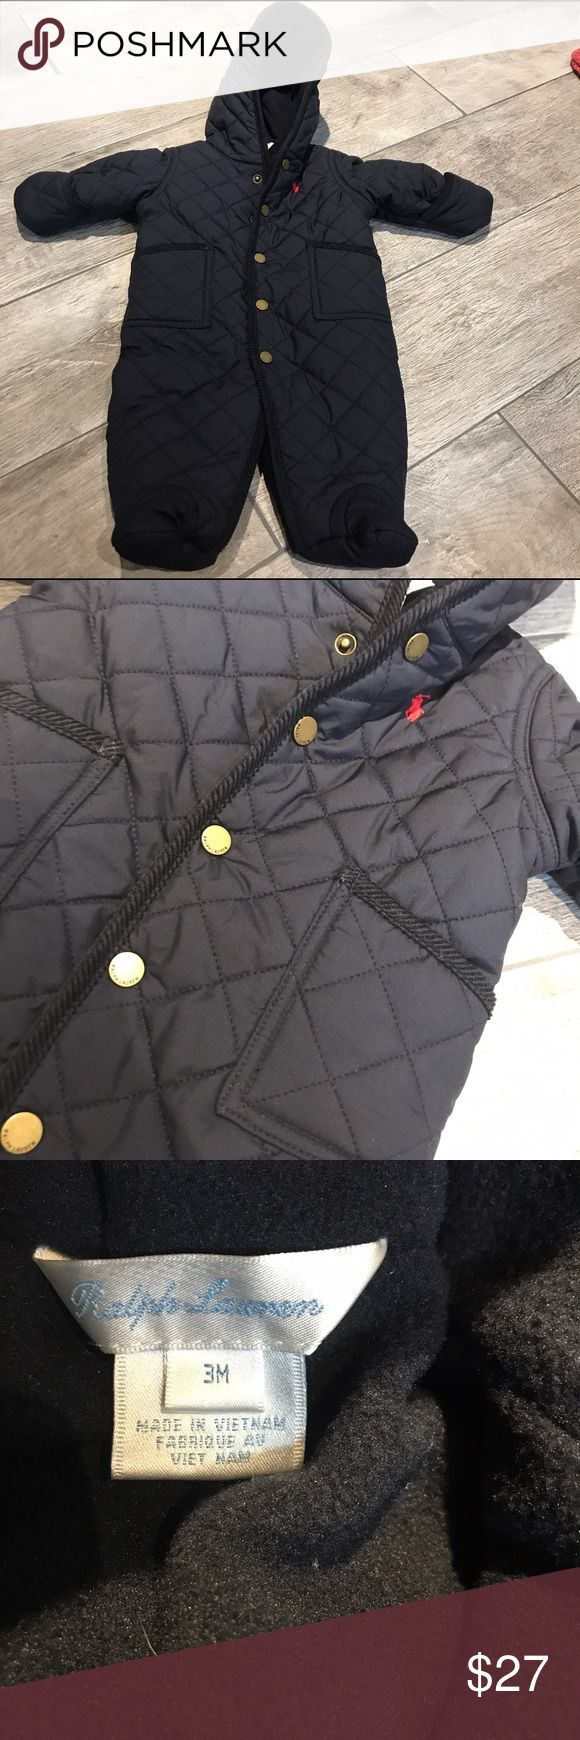 Baby boy's Ralph Lauren snow suit Navy, diamond quilted snow suit. With full snap buttons, attached mittens and booties. Like new! Ralph Lauren Jackets & Coats